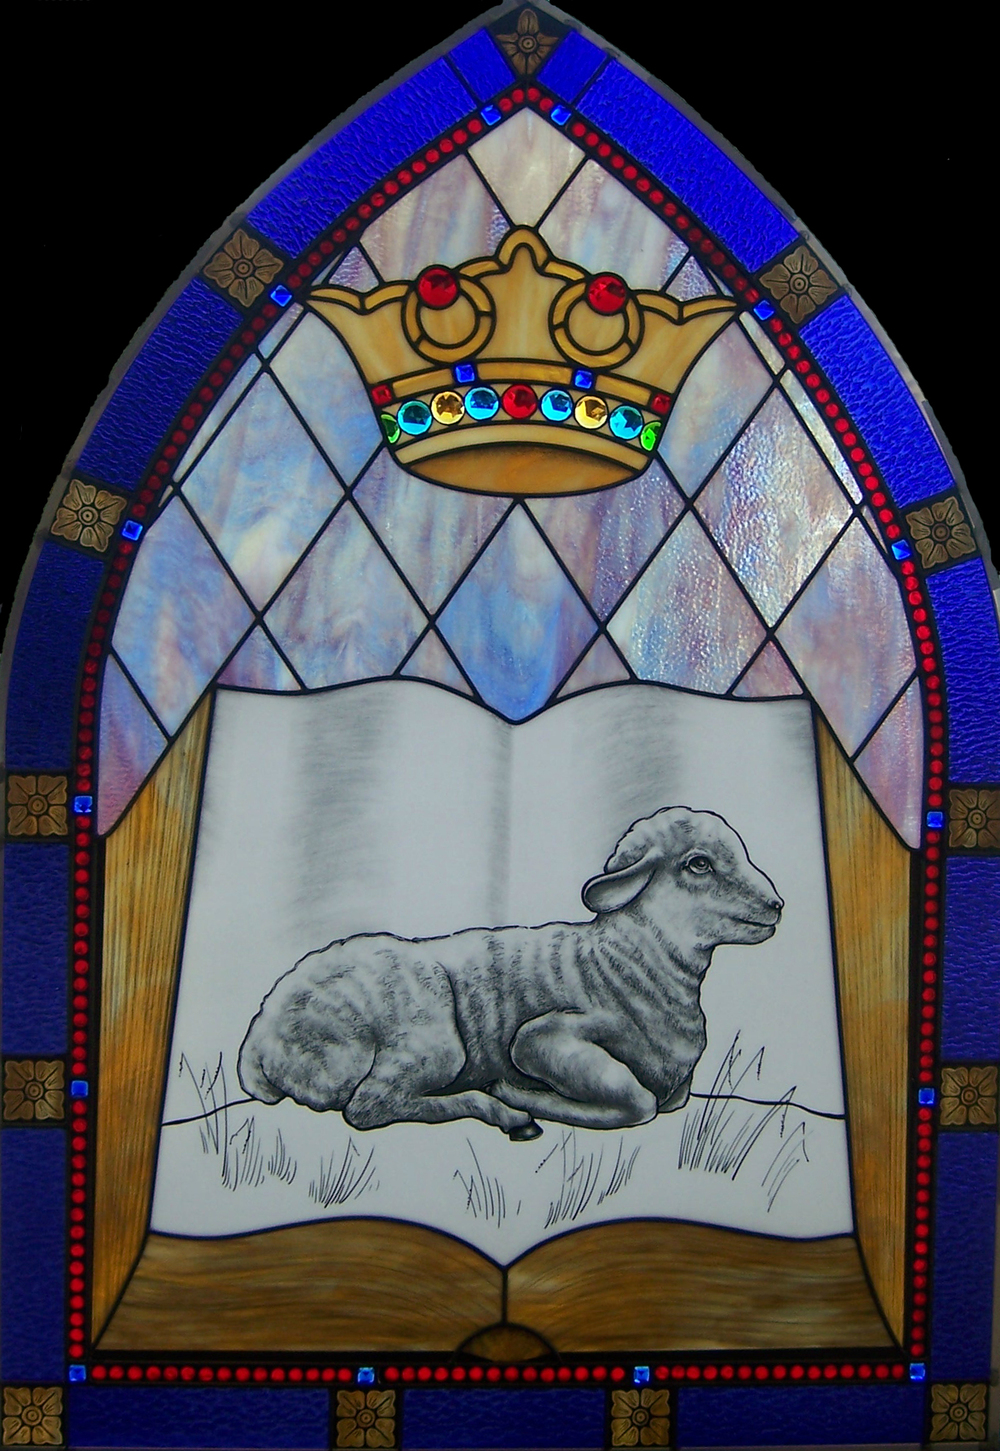 Church lamb 2005.JPG